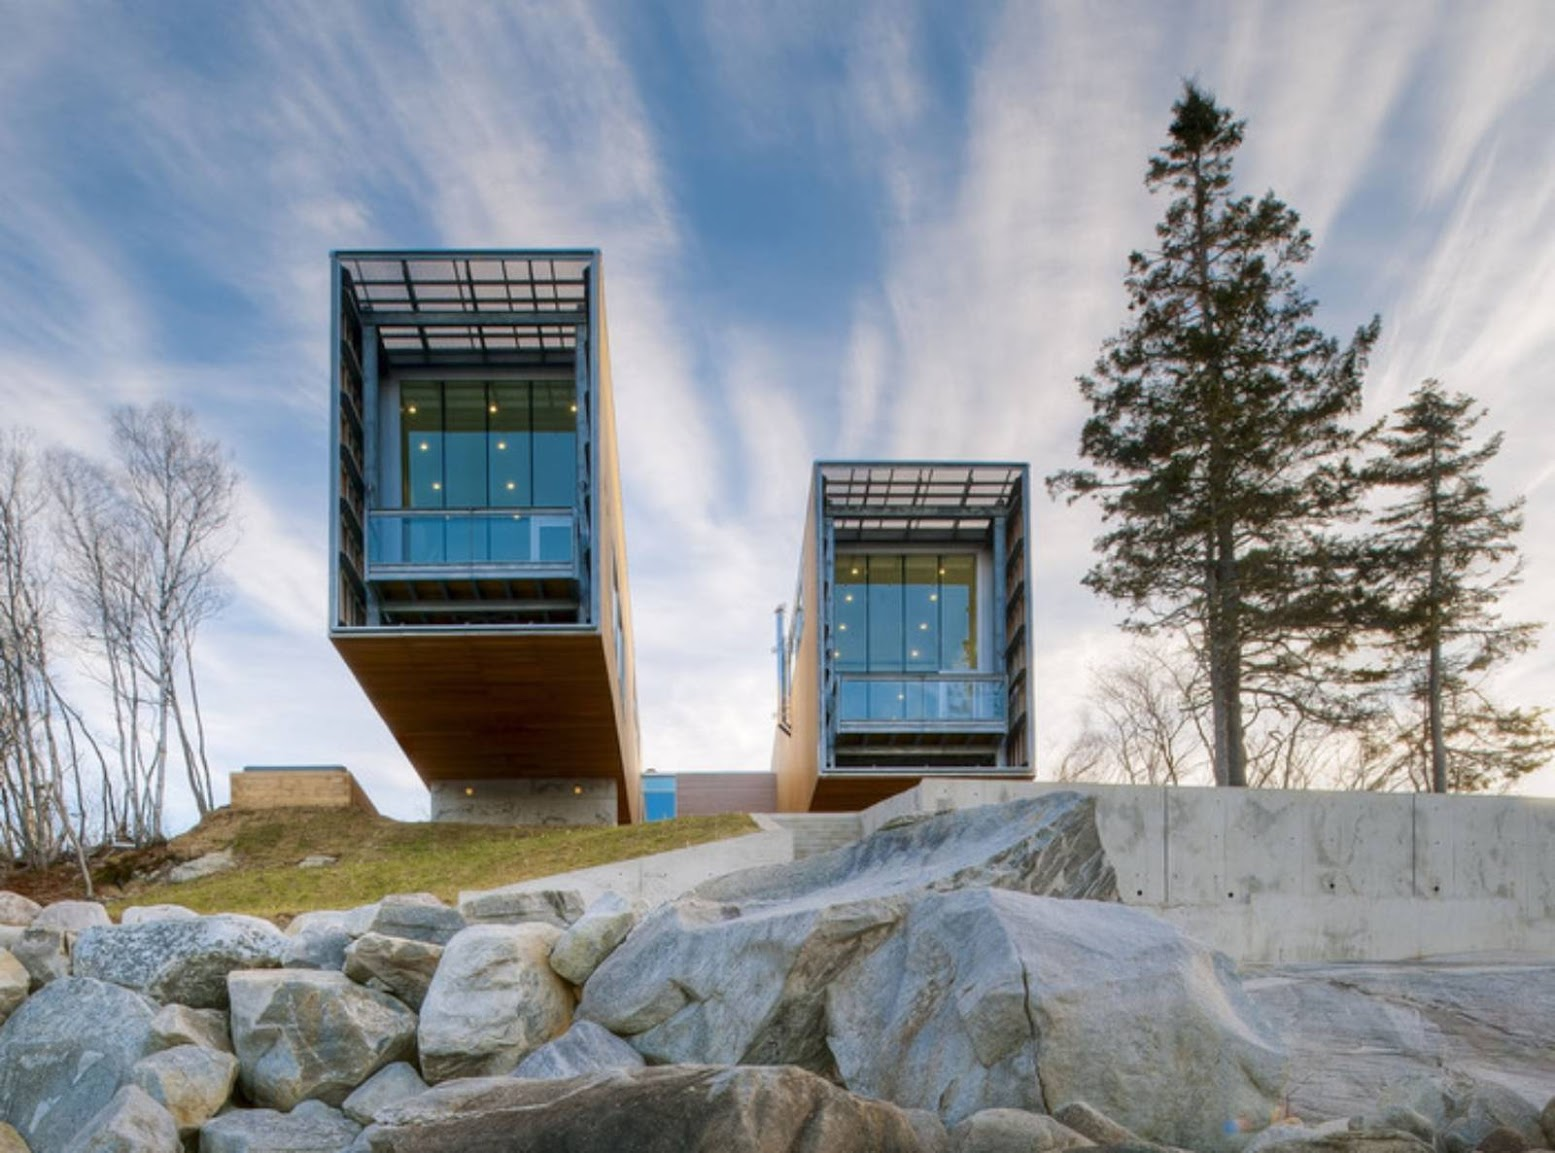 Nuova Scozia, Canada: [TWO HULLS HOUSE BY MACKAY-LYONS SWEETAPPLE ARCHITECTS]